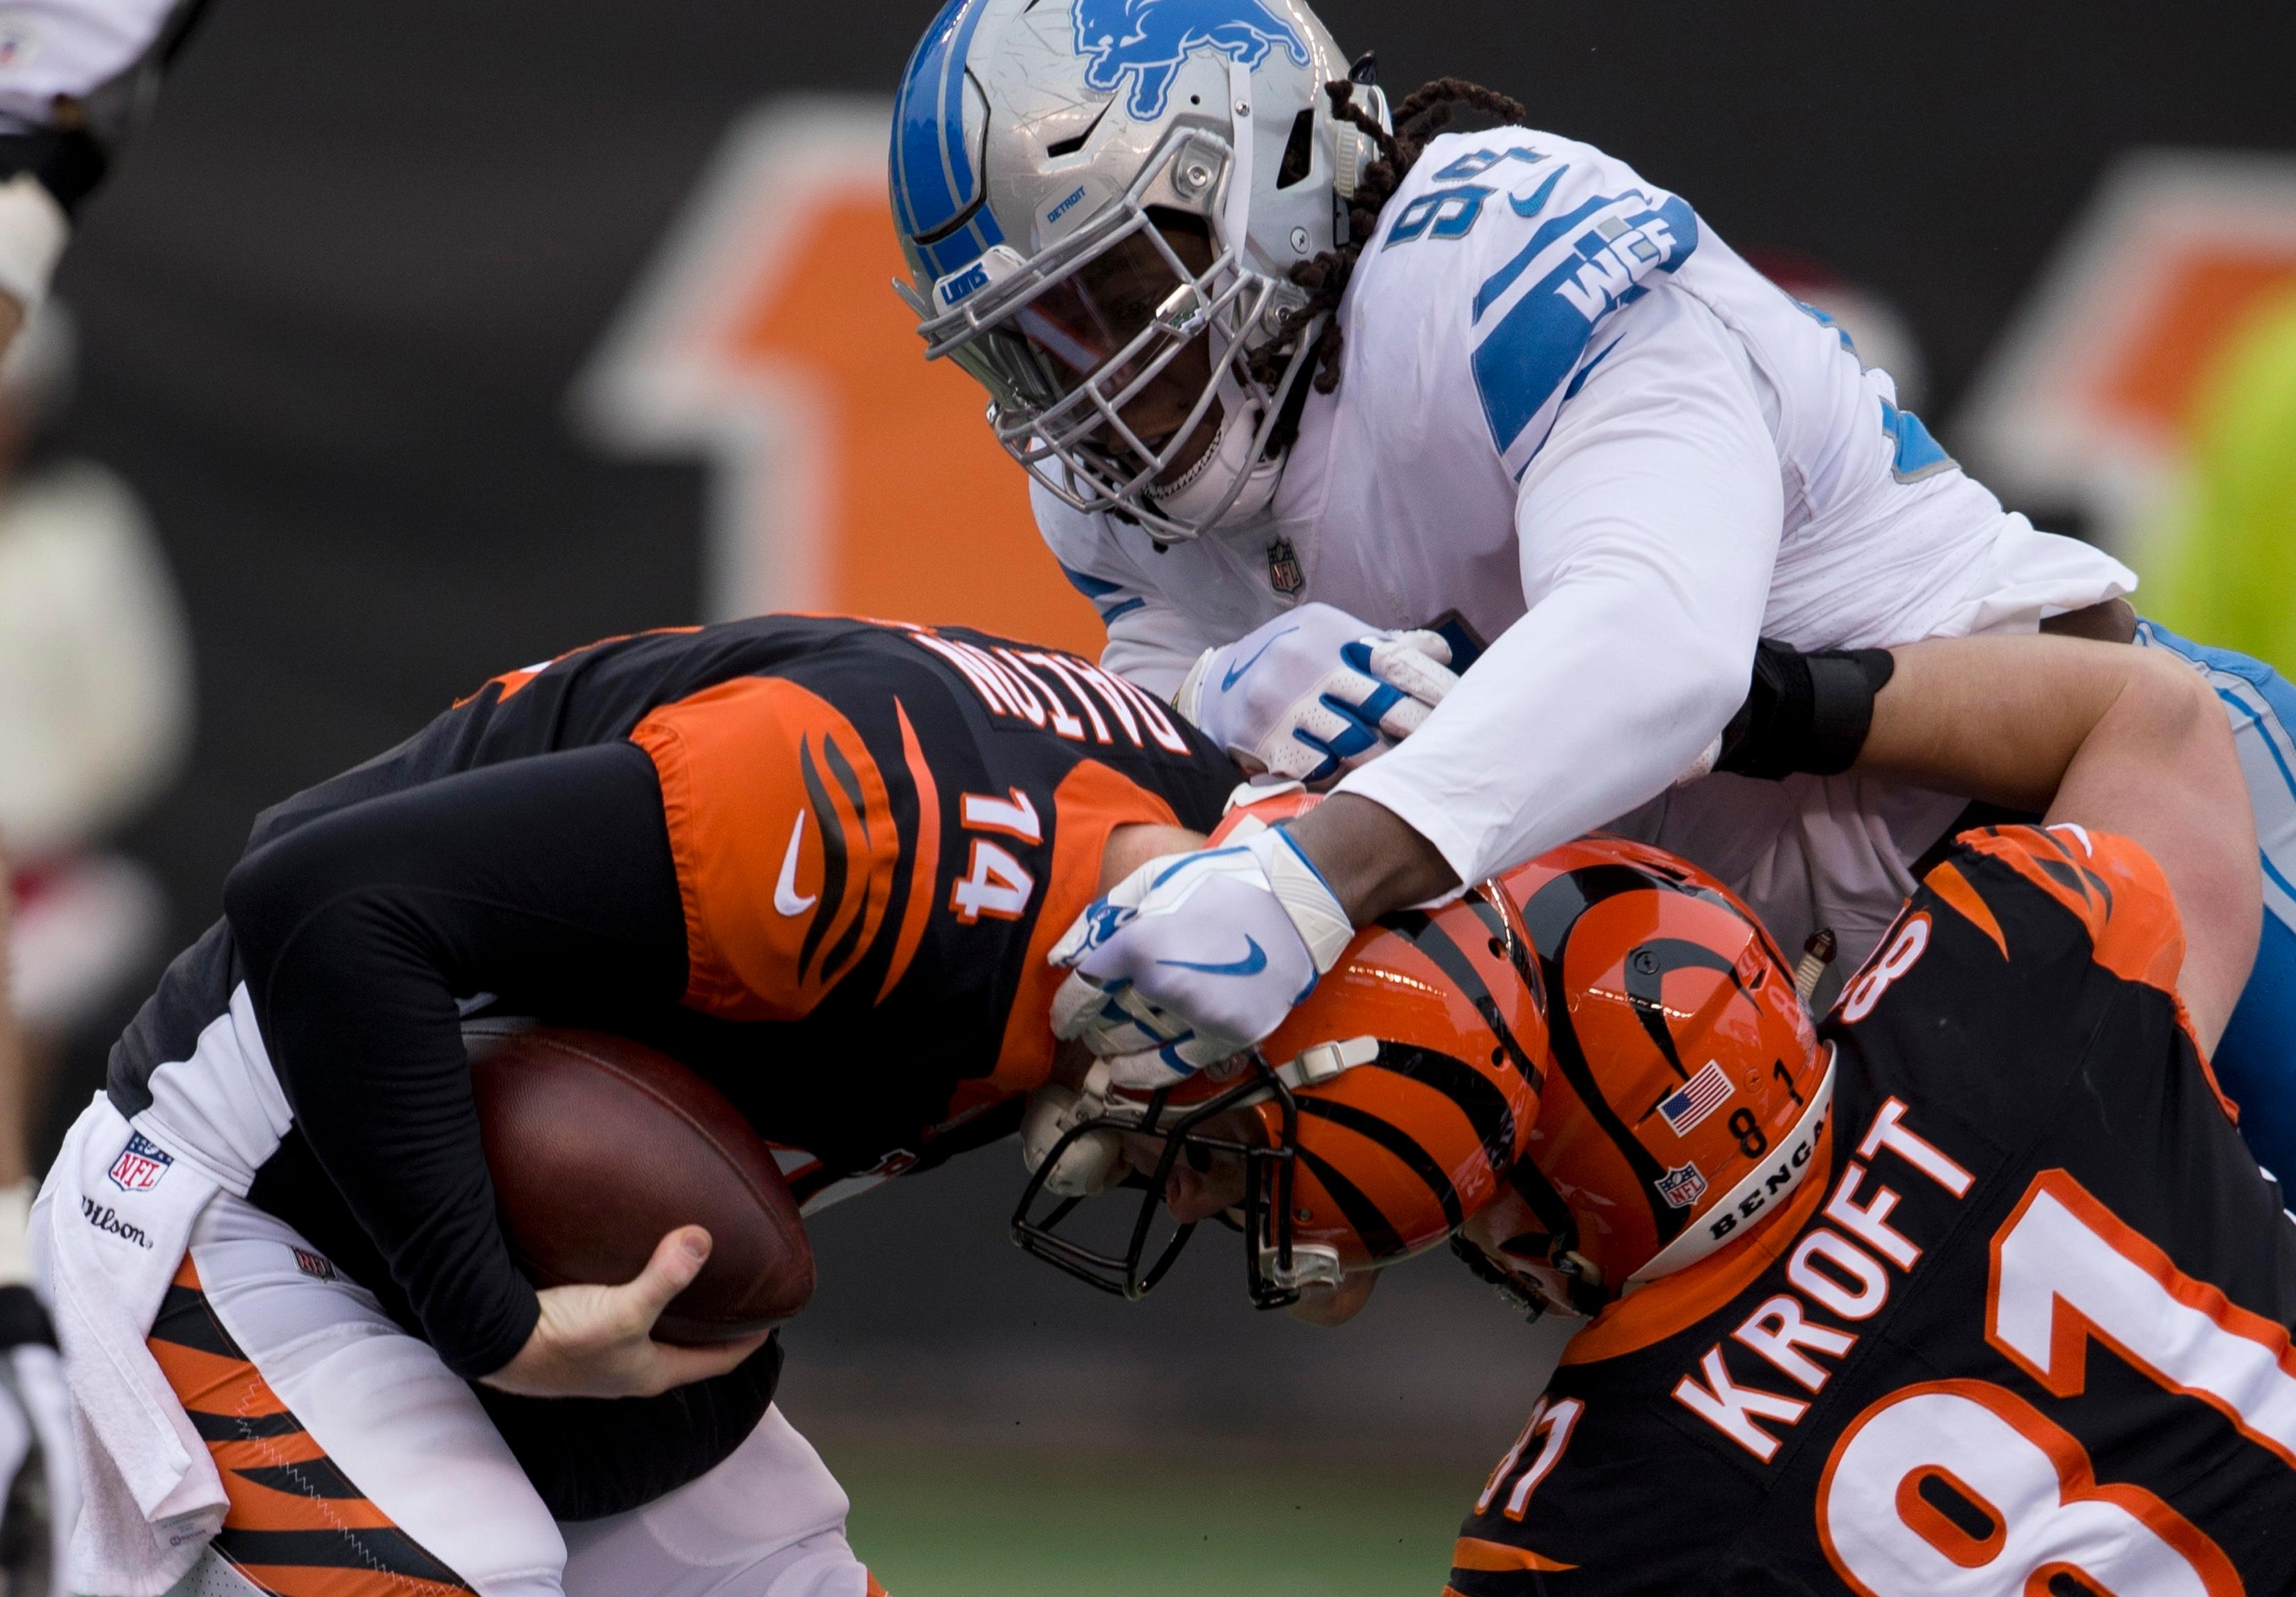 Detroit Lions defensive end Ezekiel Ansah (94) sacks Cincinnati Bengals quarterback Andy Dalton (14) during the first half of an NFL football game, Sunday, Dec. 24, 2017, in Cincinnati. (AP Photo/Frank Victores)